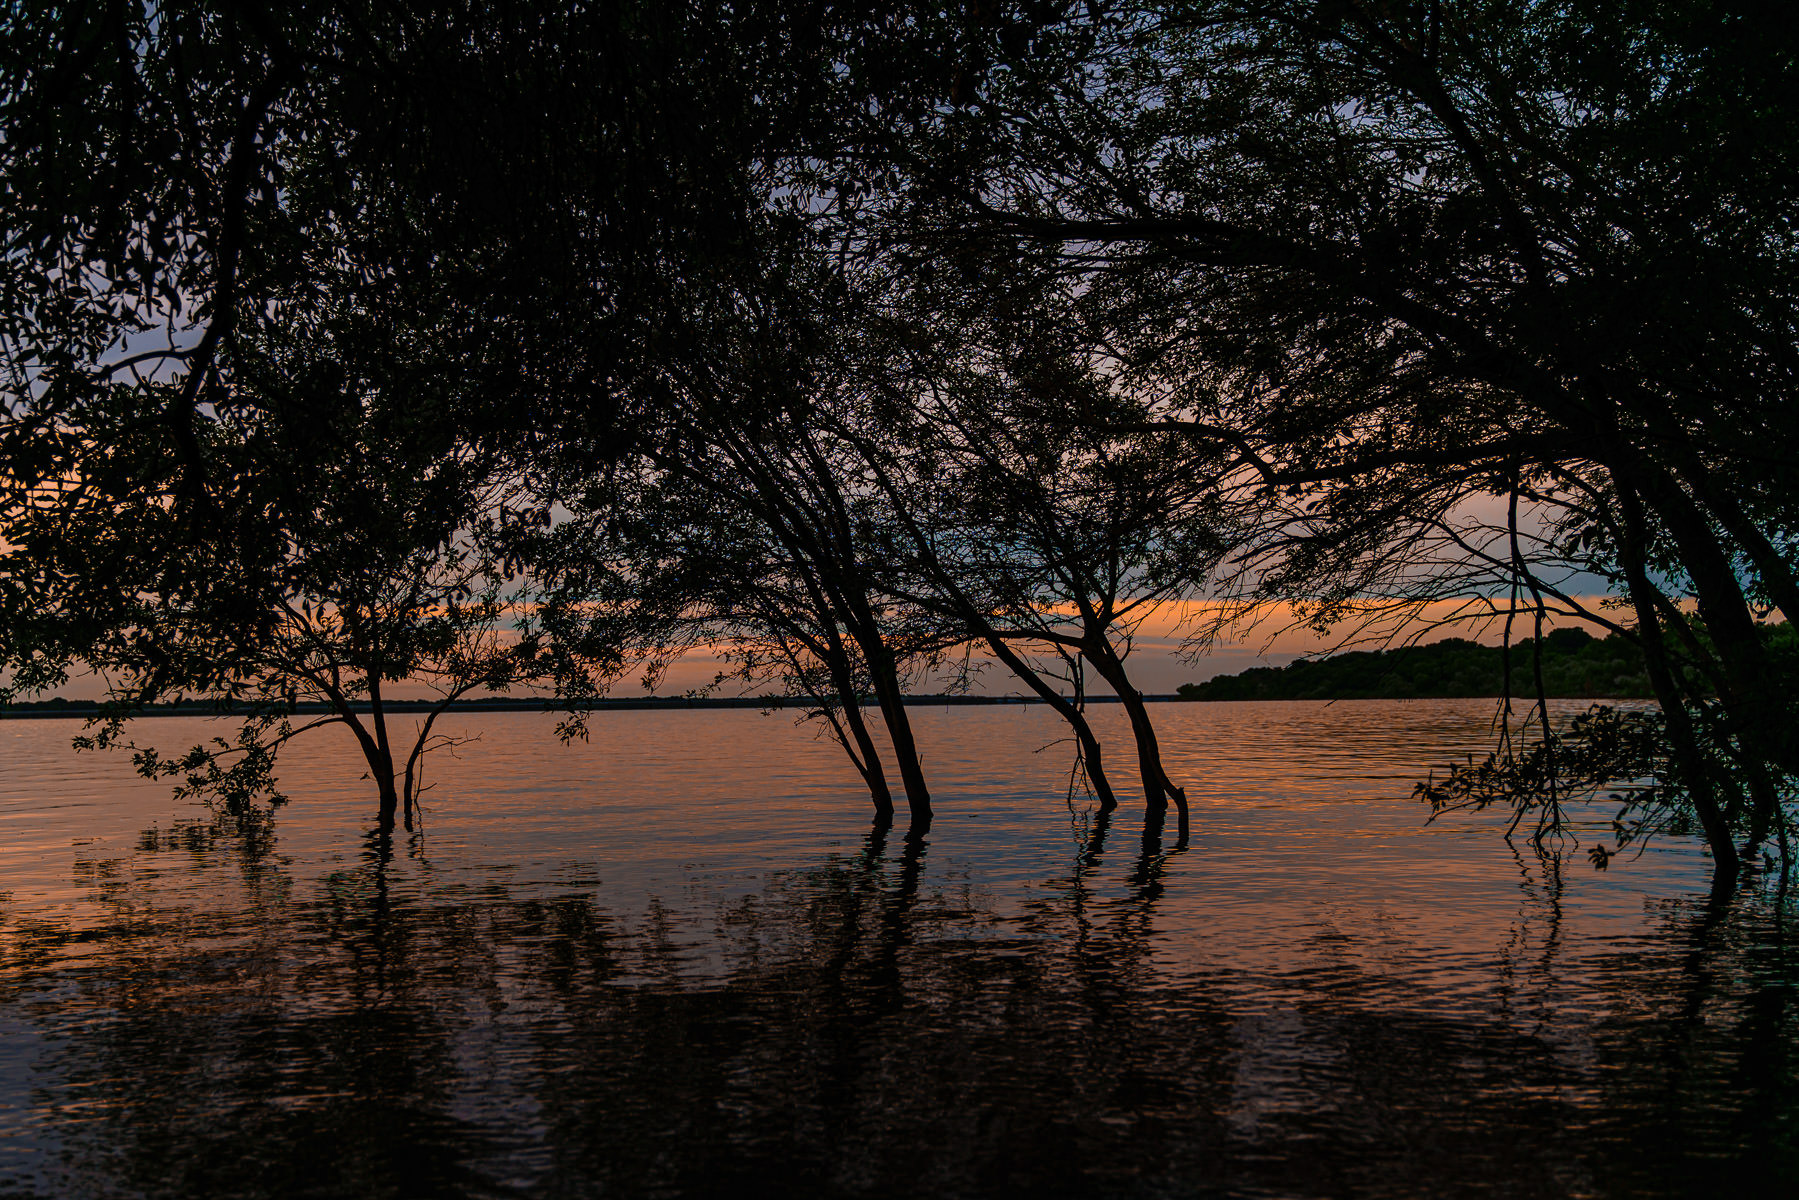 The morning sun silhouettes trees growing along the shore of Texas' Lake Lavon.